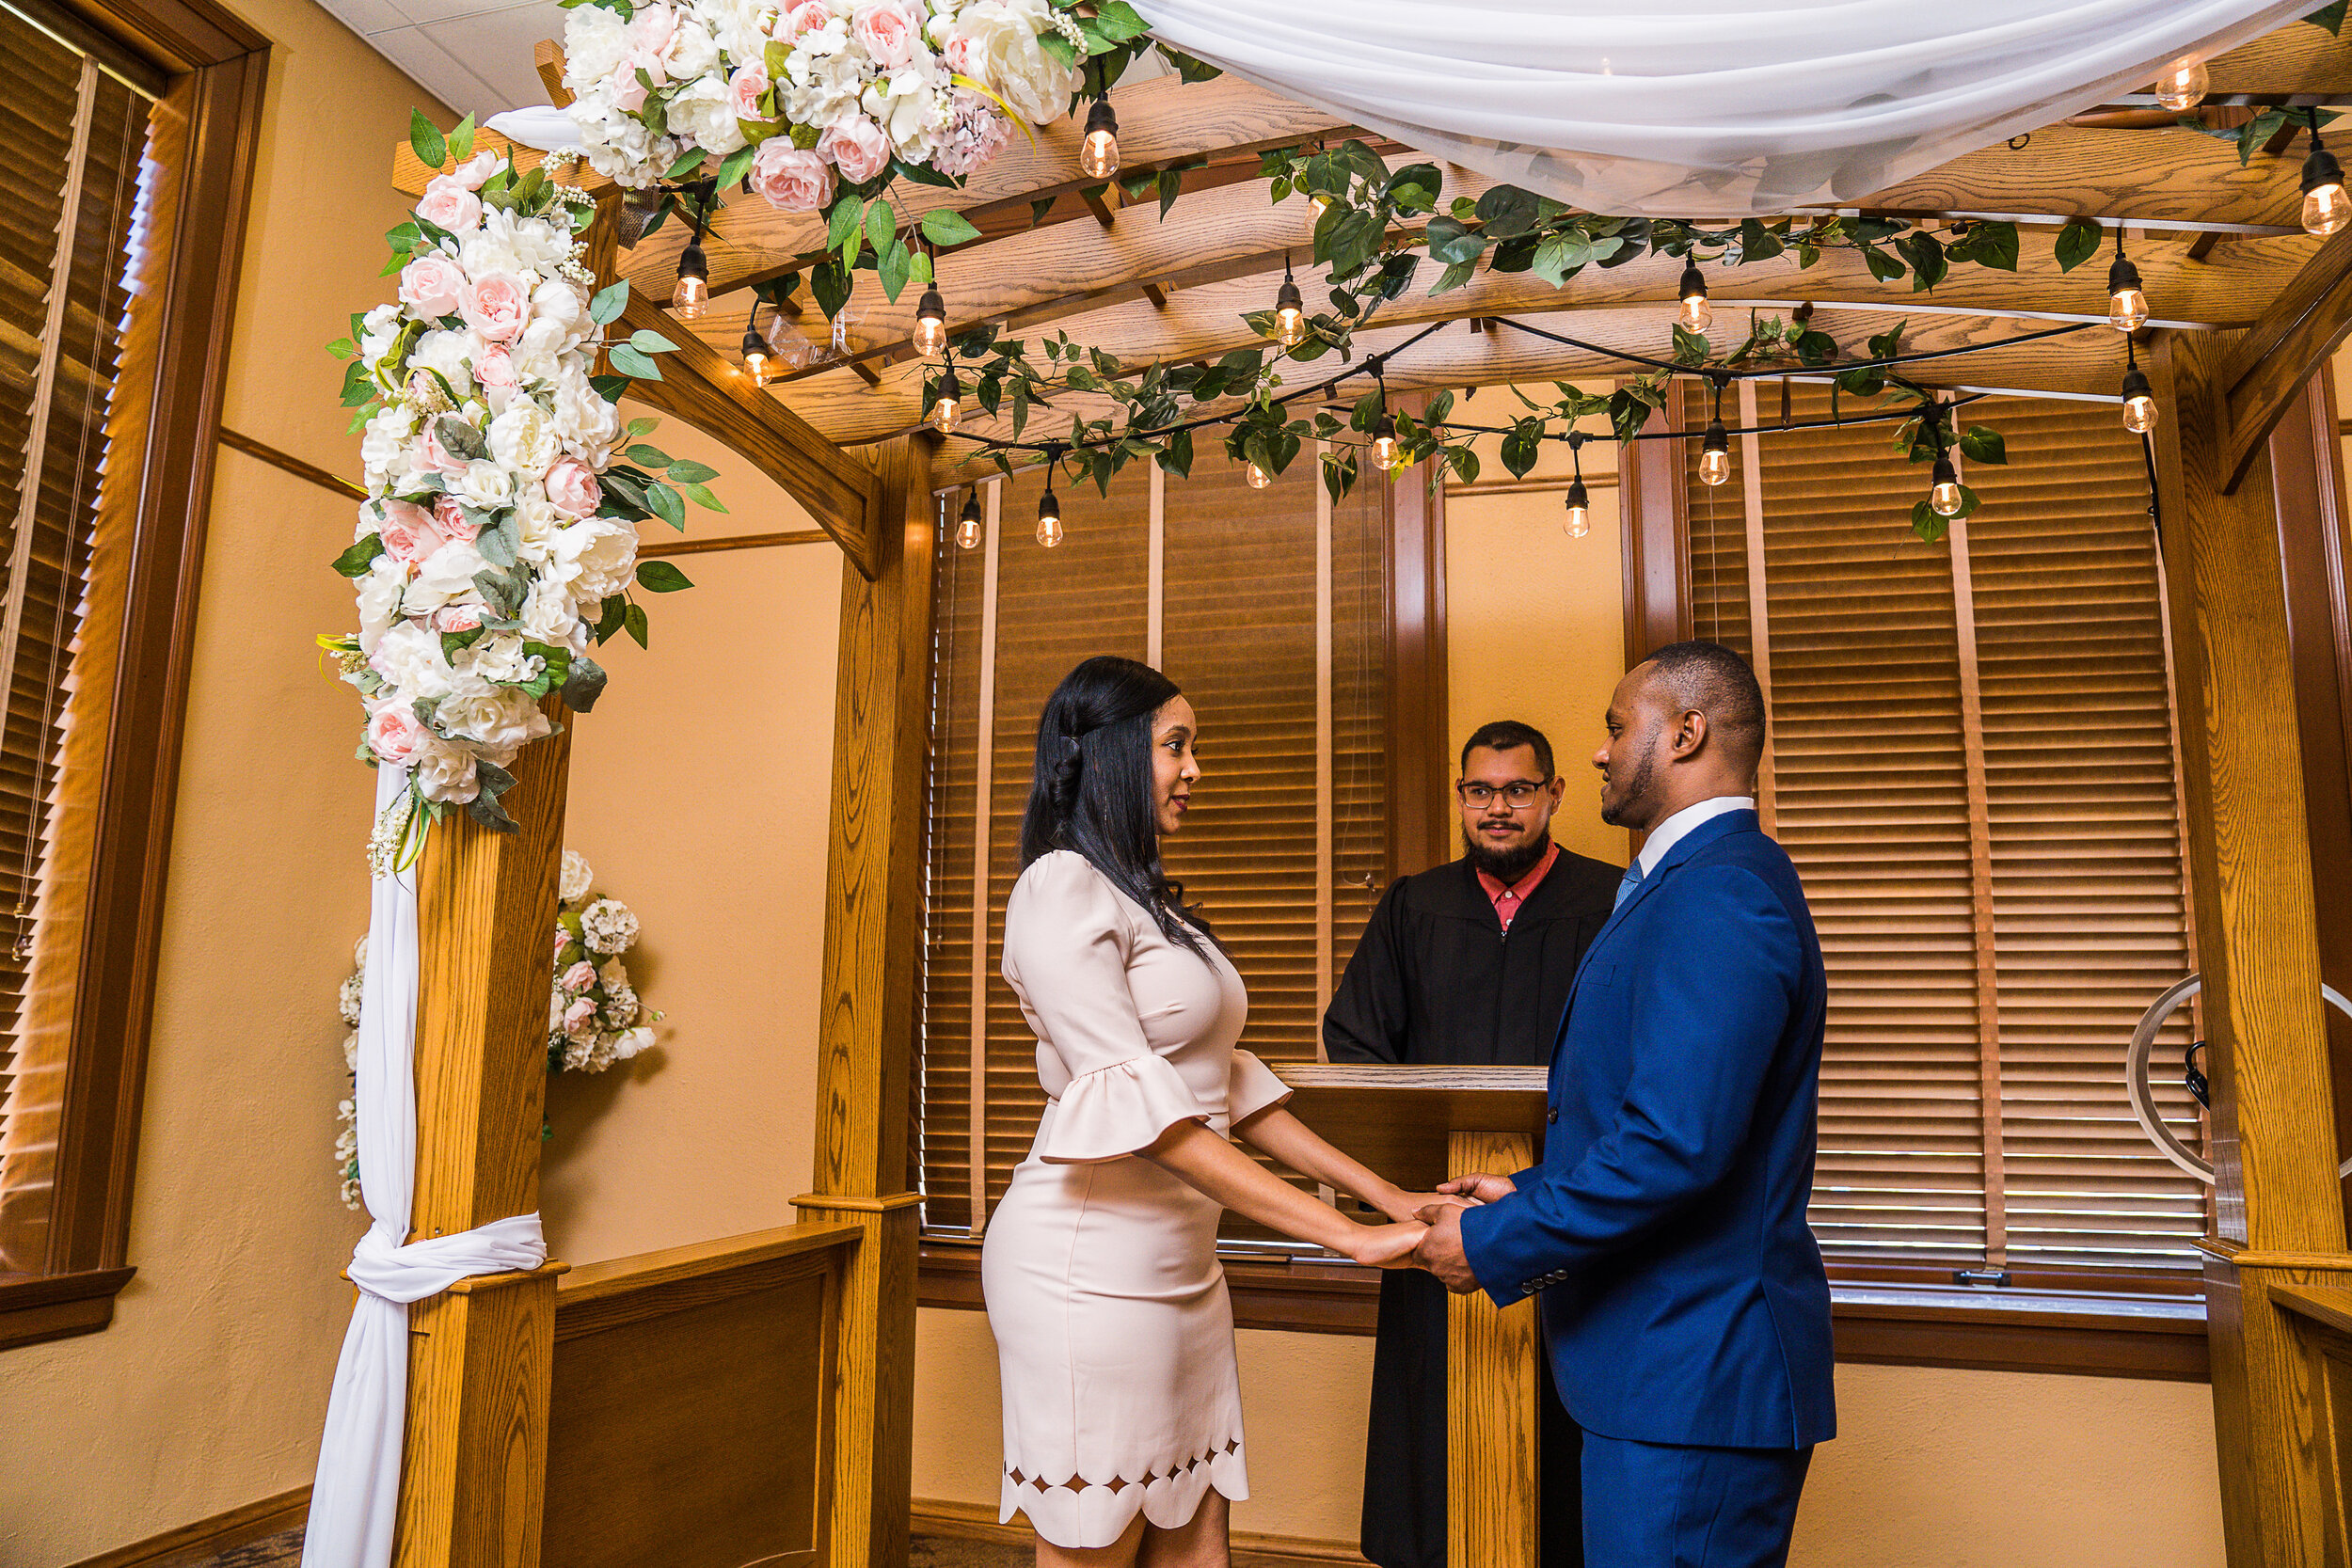 sewit-elopement-orange-county-santa-ana-courthouse-6-3.jpg